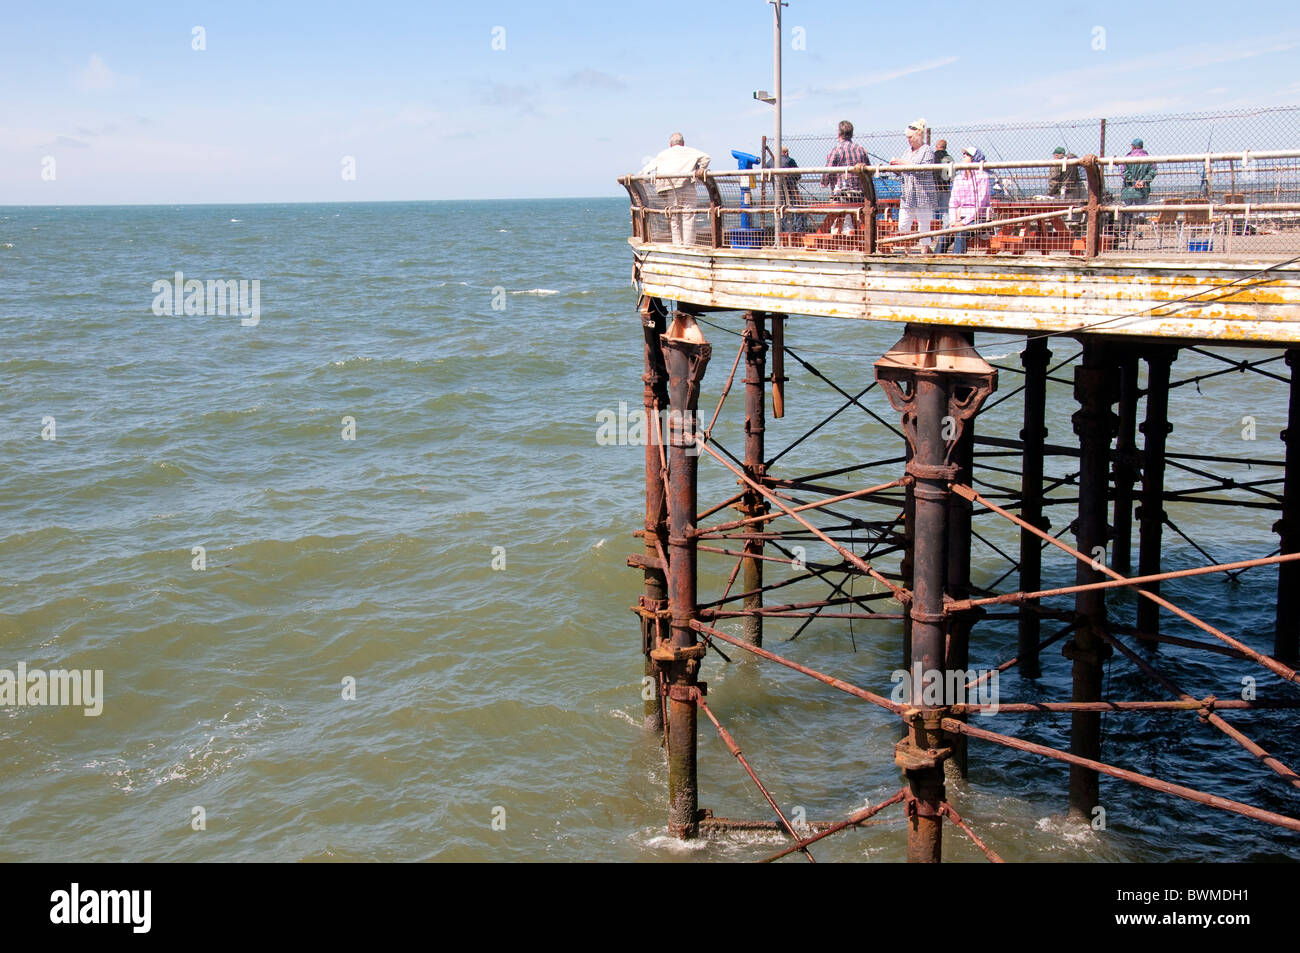 The end of the Central Pier in Blackpool on the coast of Lancashire in Northern England - Stock Image